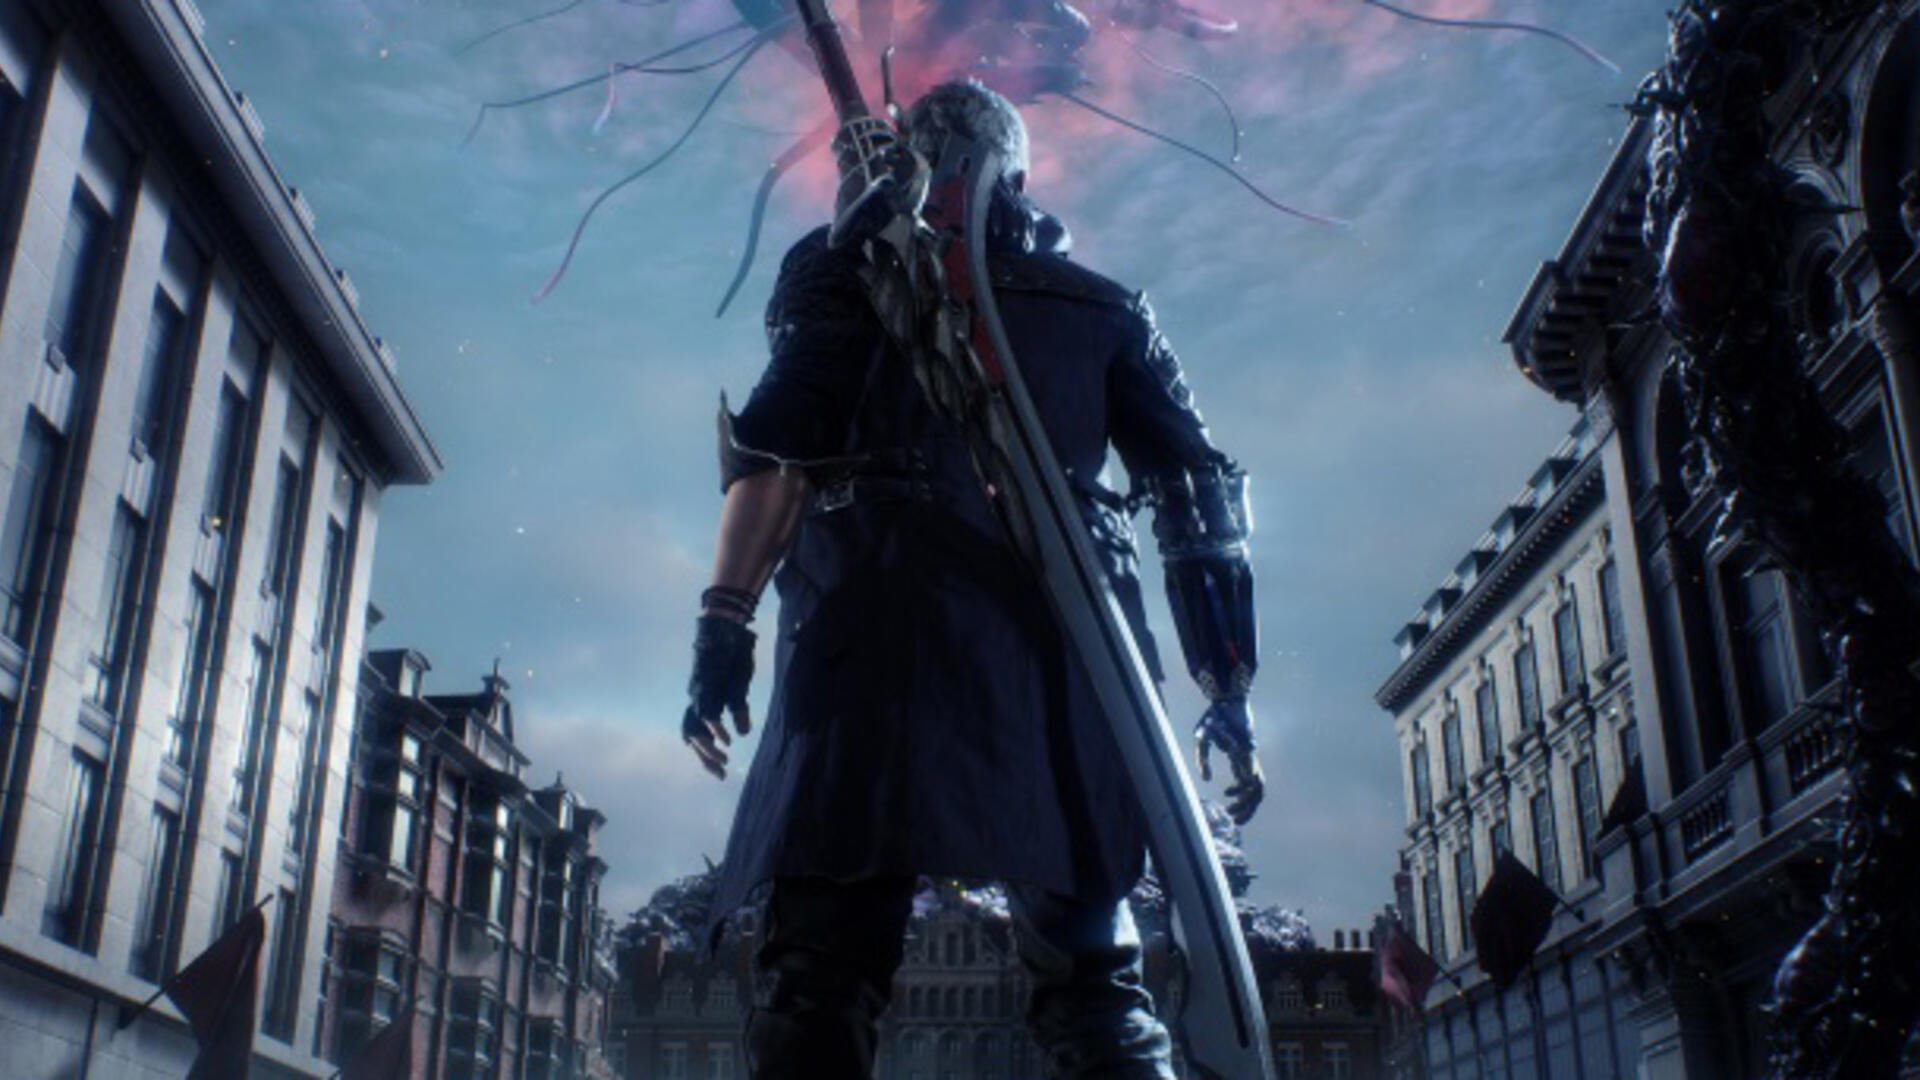 Capcom Replaces Vocalist Accused of Sexual Misconduct on Devil May Cry 5 Song